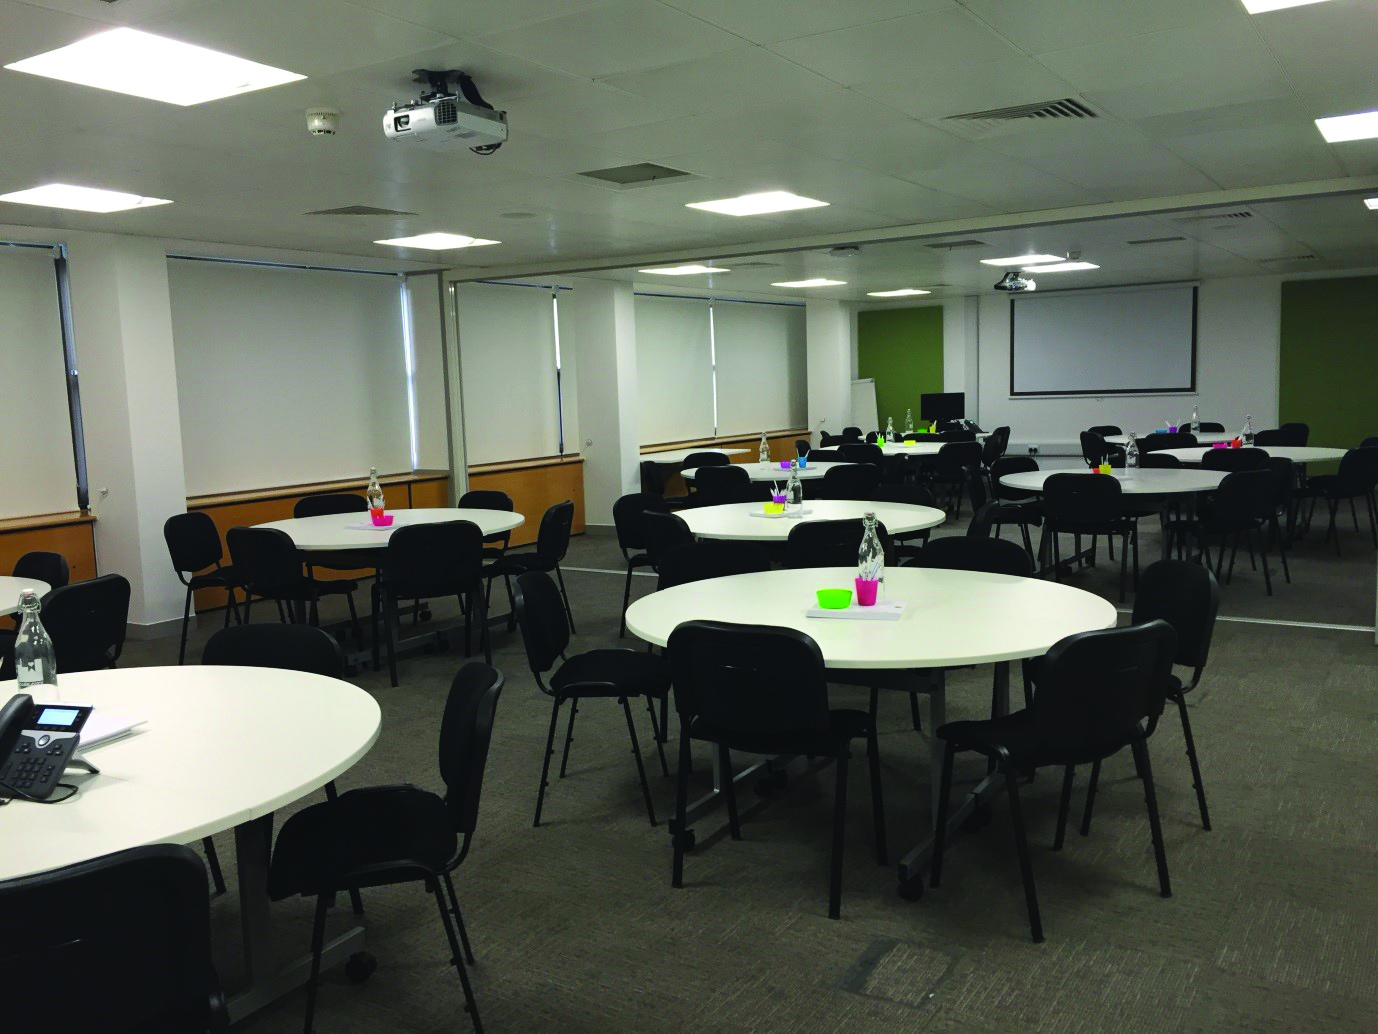 Care City Venue Hire - Training Room 1 and 2